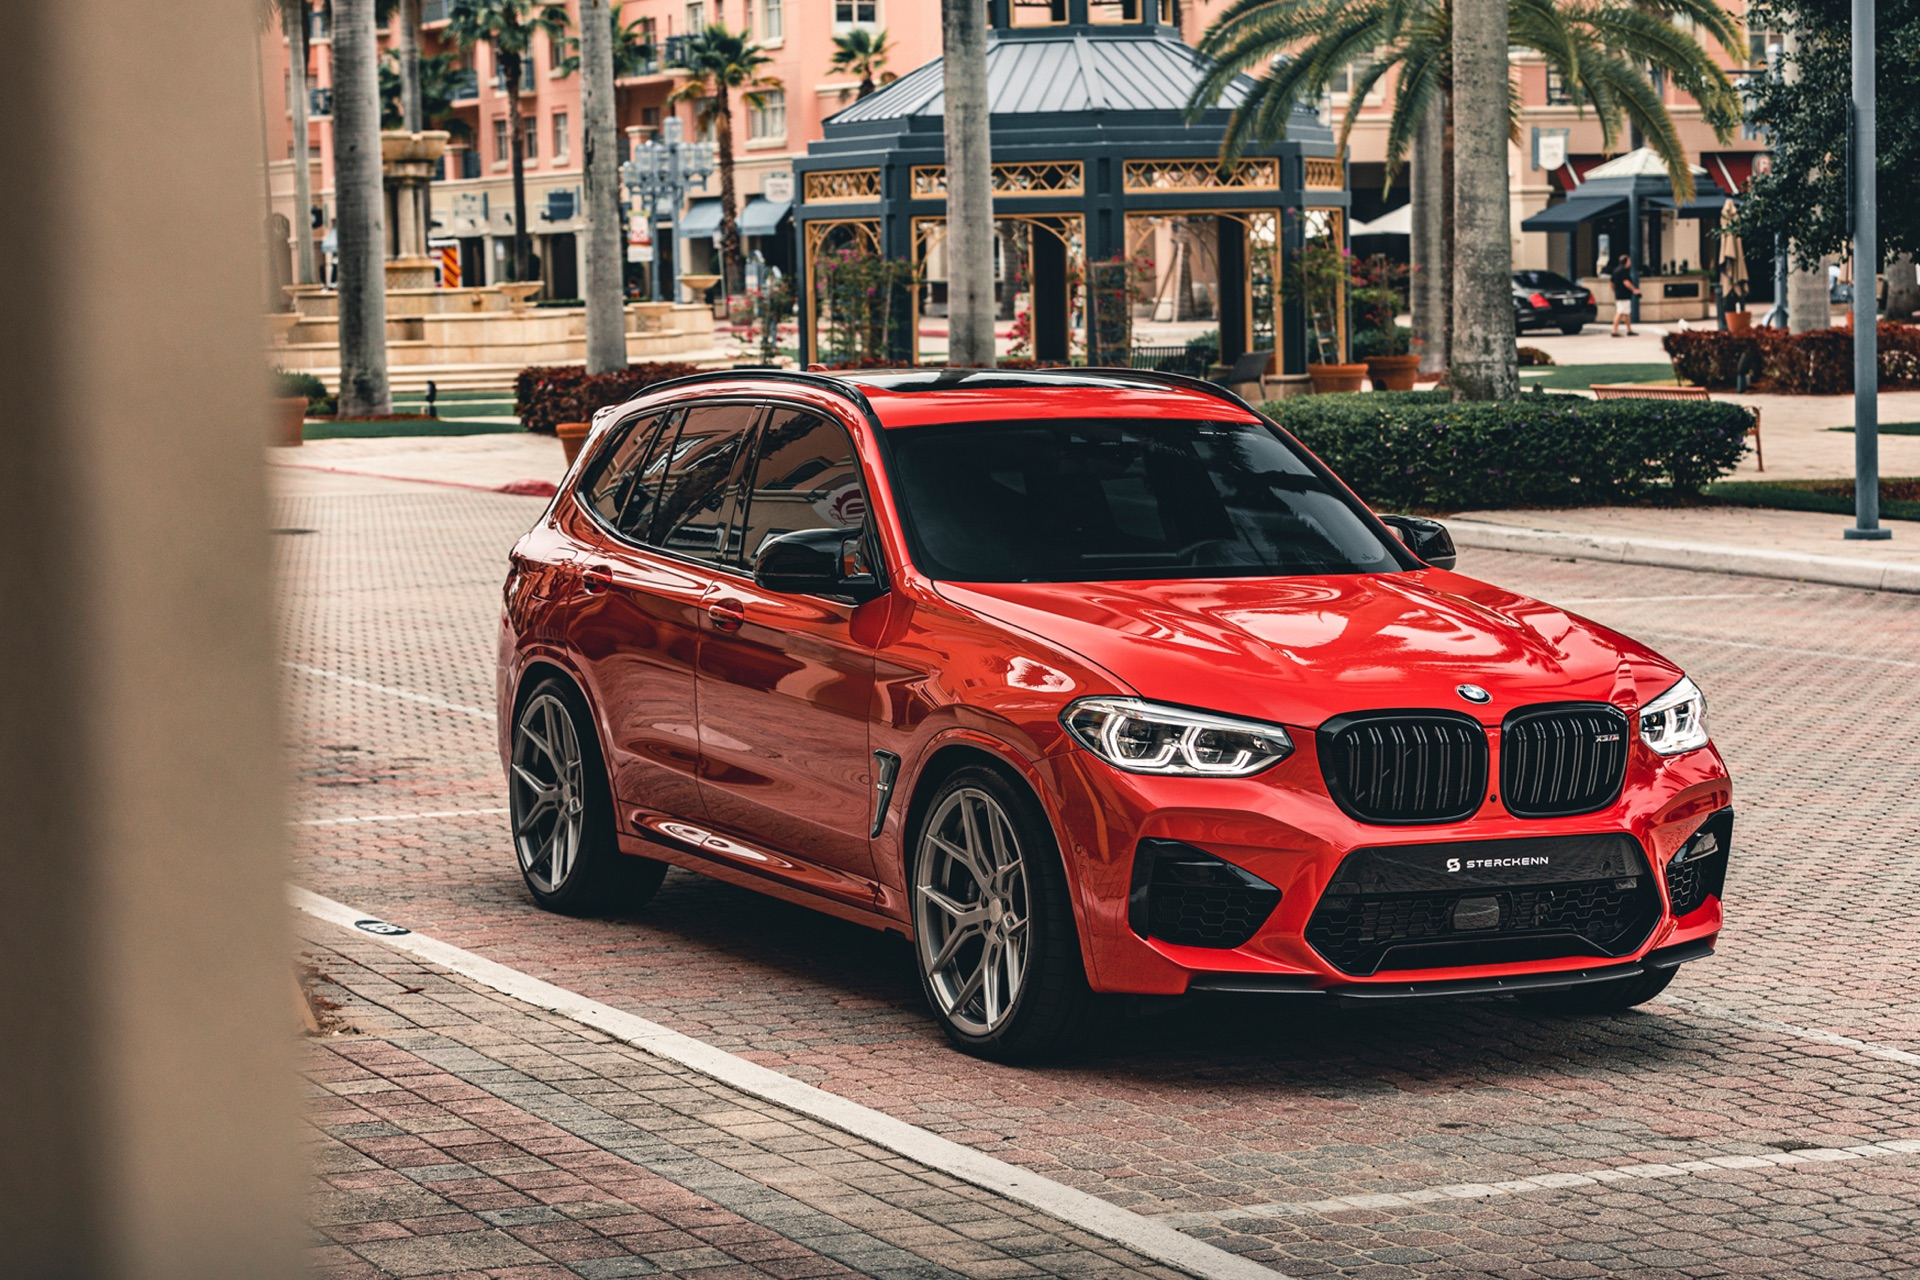 BMW_X3_M_by_Sterckenn_0003